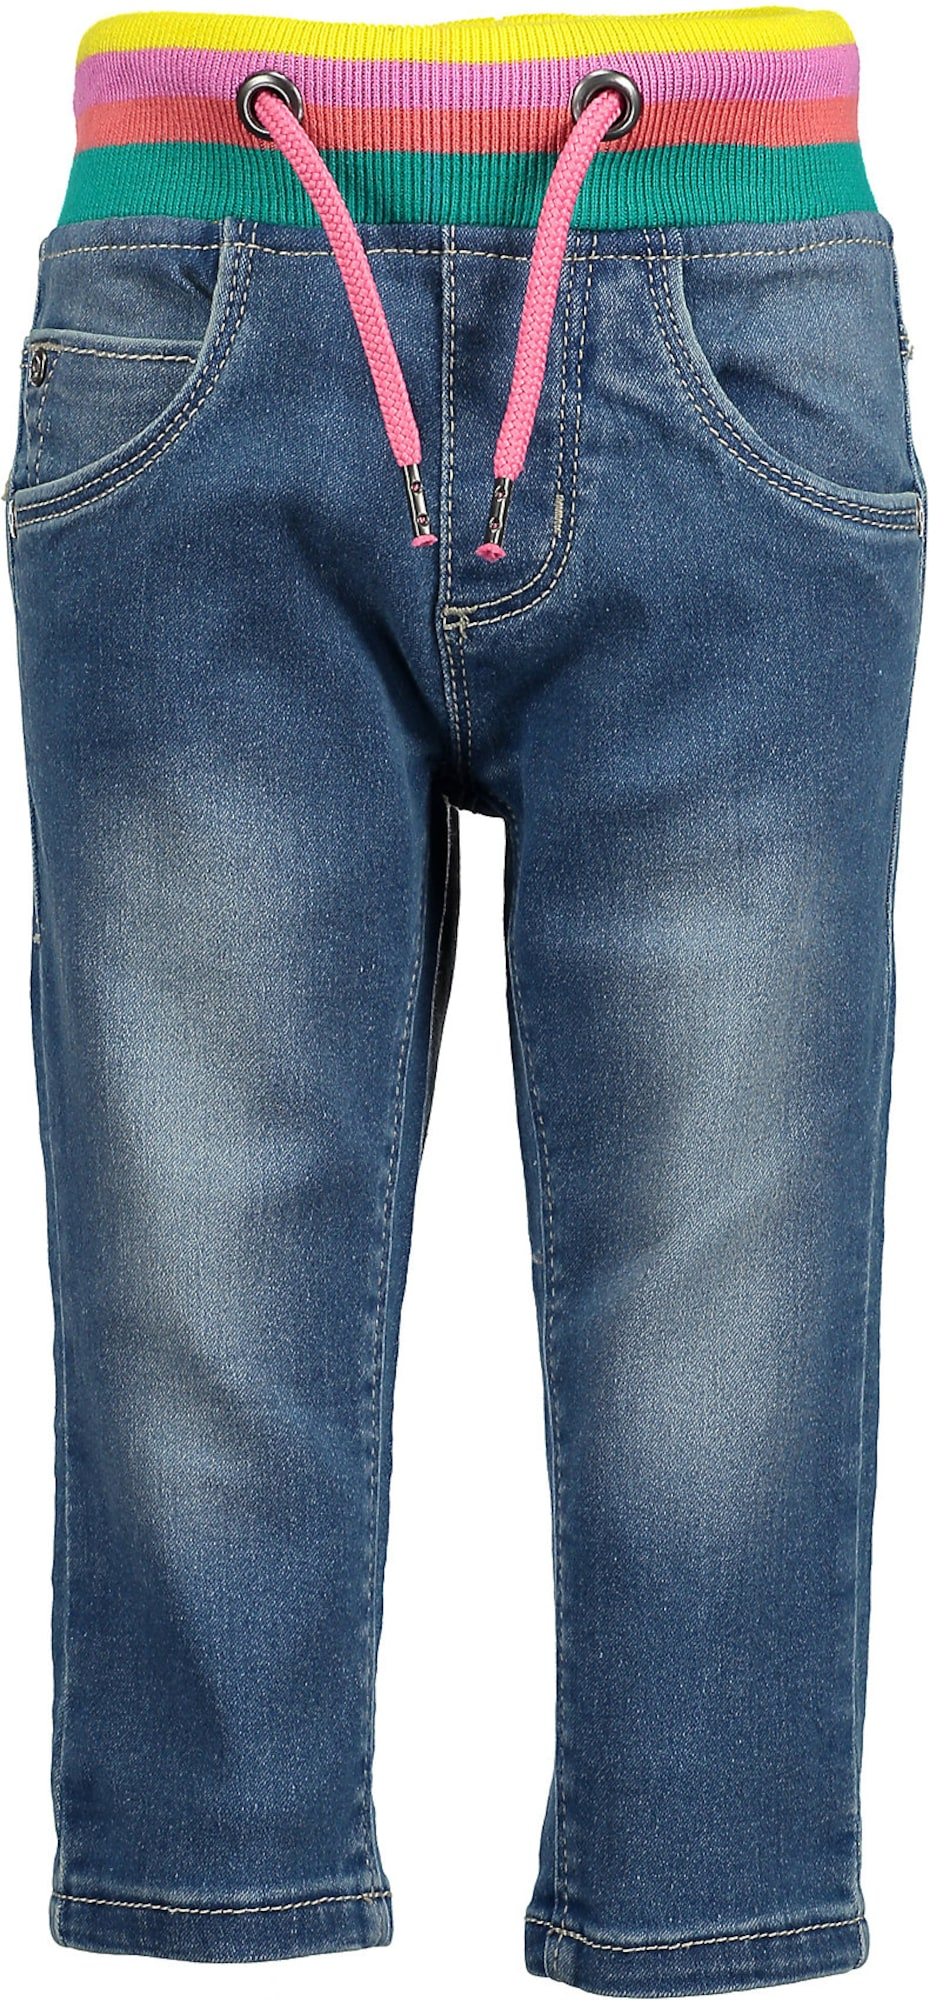 Babyhosen - Jeans aus Sweatdenim - Onlineshop ABOUT YOU